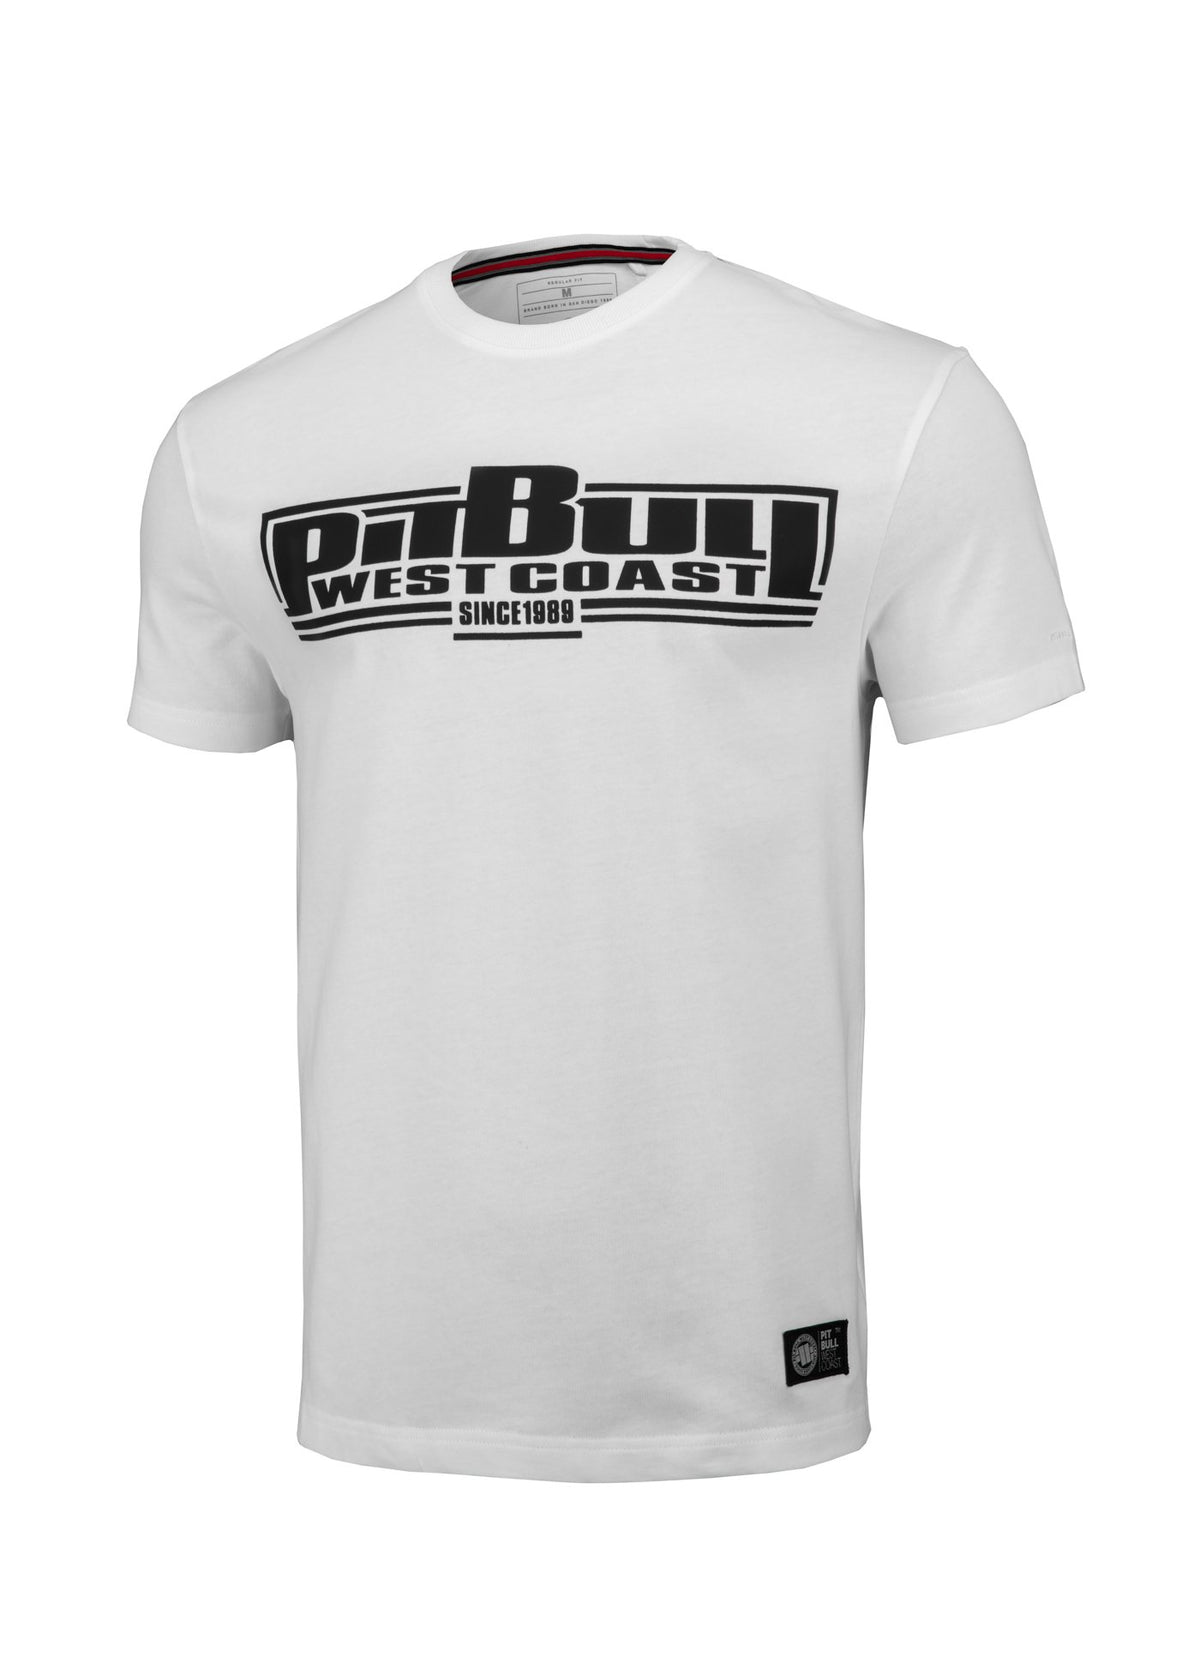 T-shirt Regular Fit Boxing White - Pitbull West Coast U.S.A.